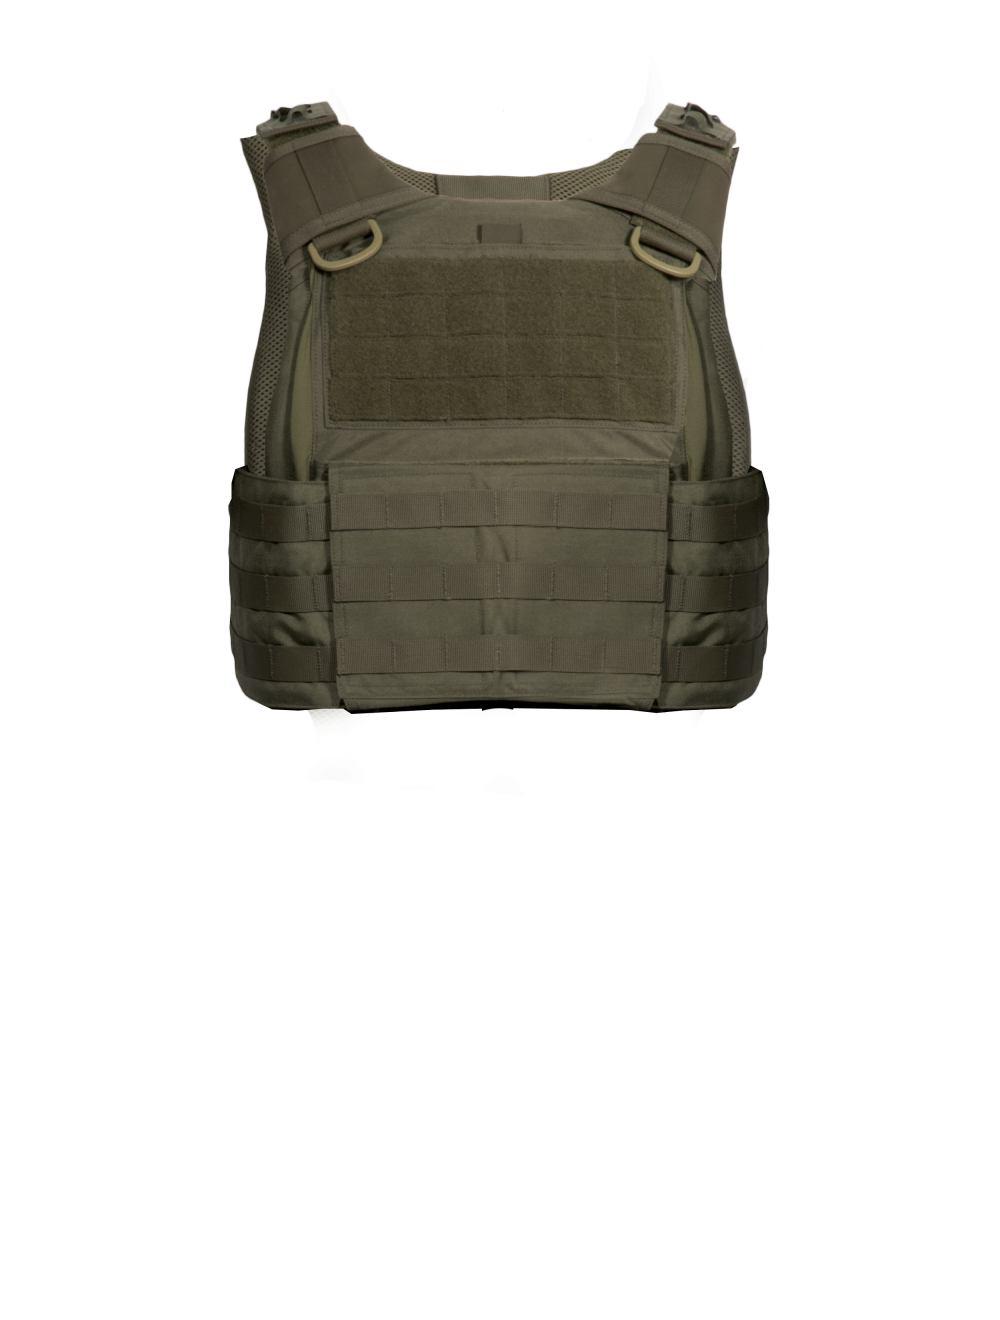 Armor Express TORC Body Armor Package.